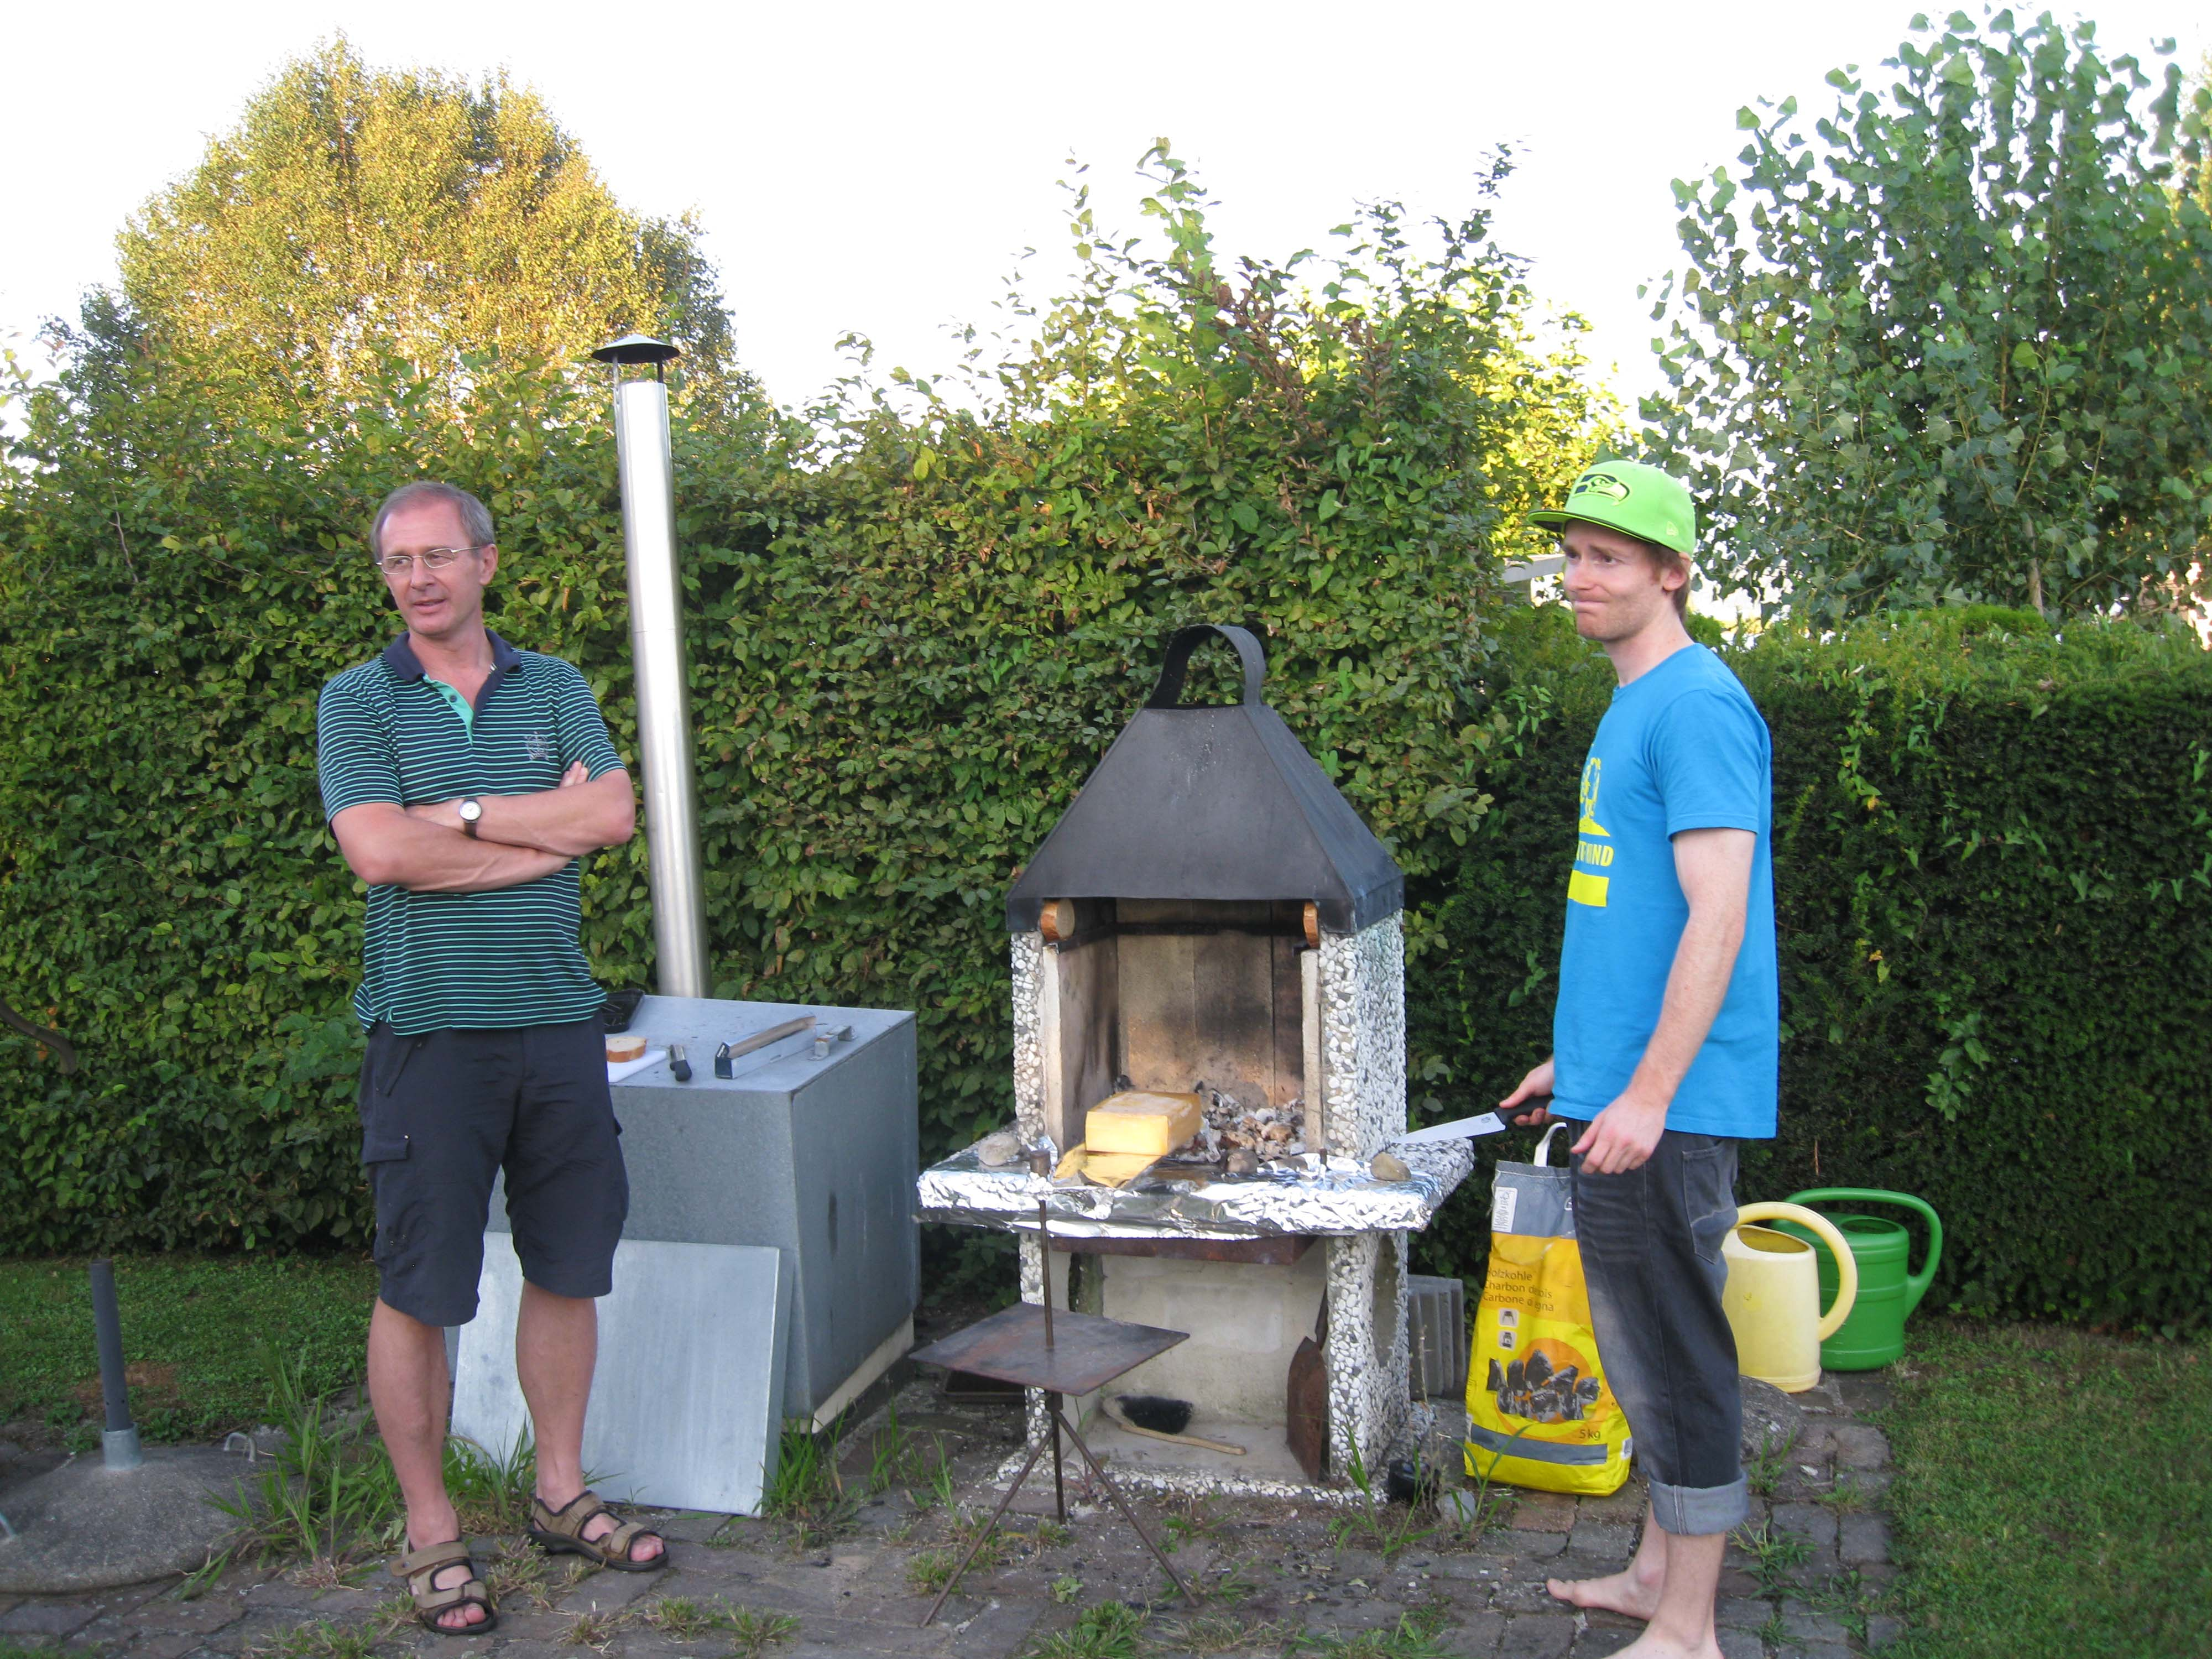 2015-08-21-1939-Raclette-Stampf-Rac-CE-lette-Stampf-IMG-CE-4494-web